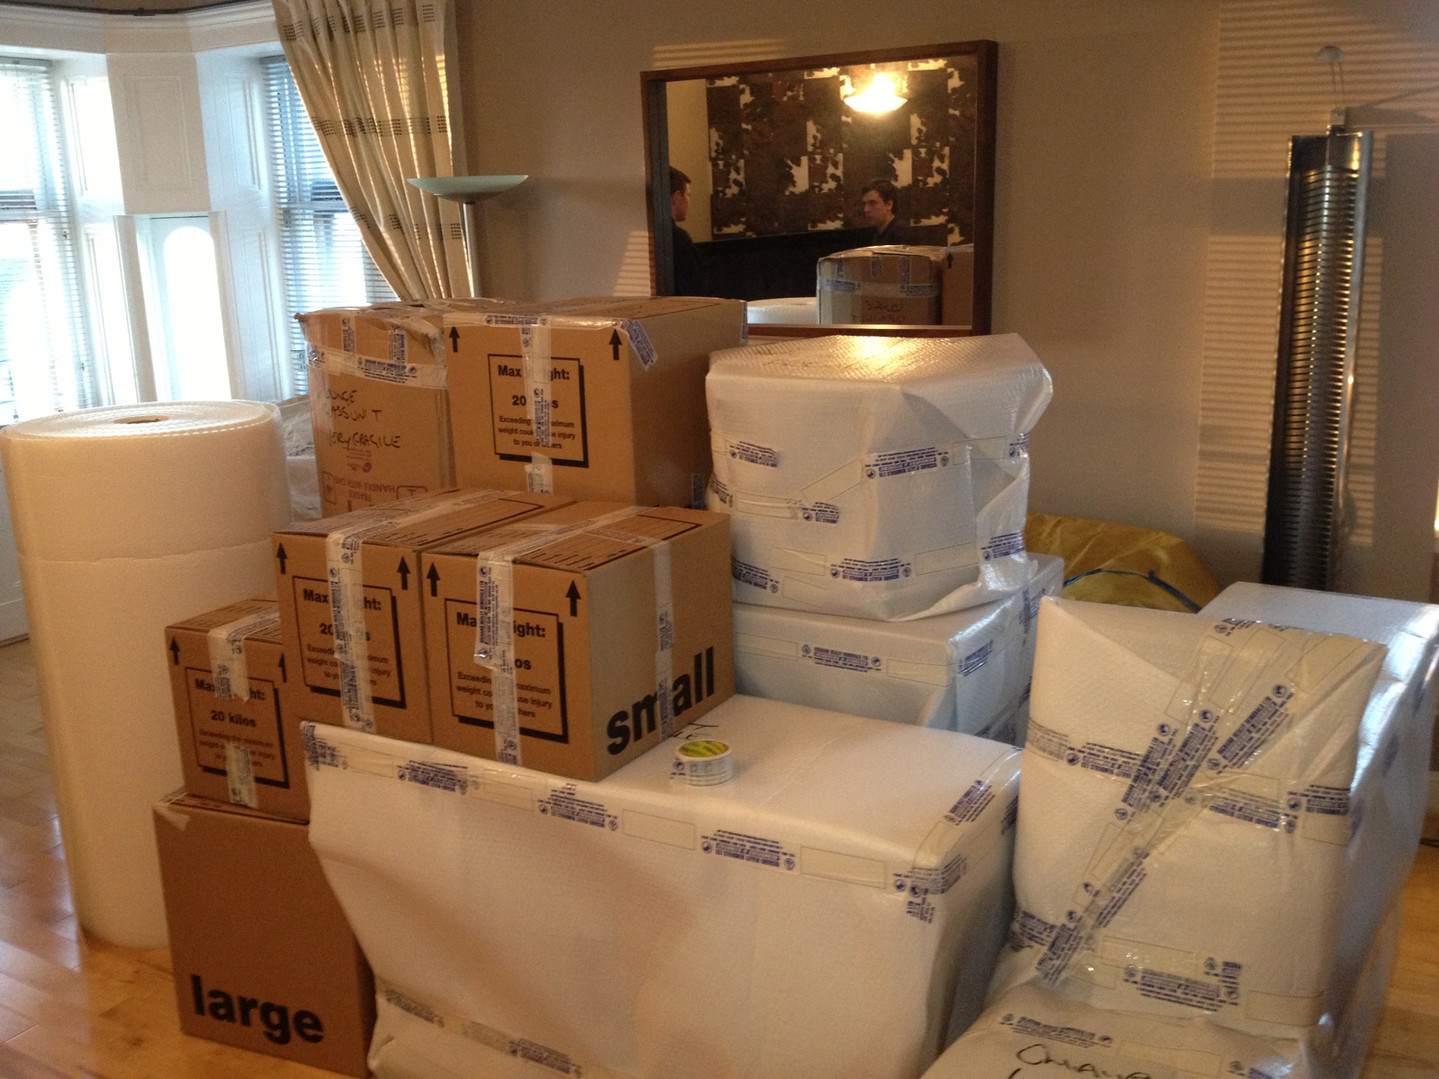 Furniture overseas wrapped